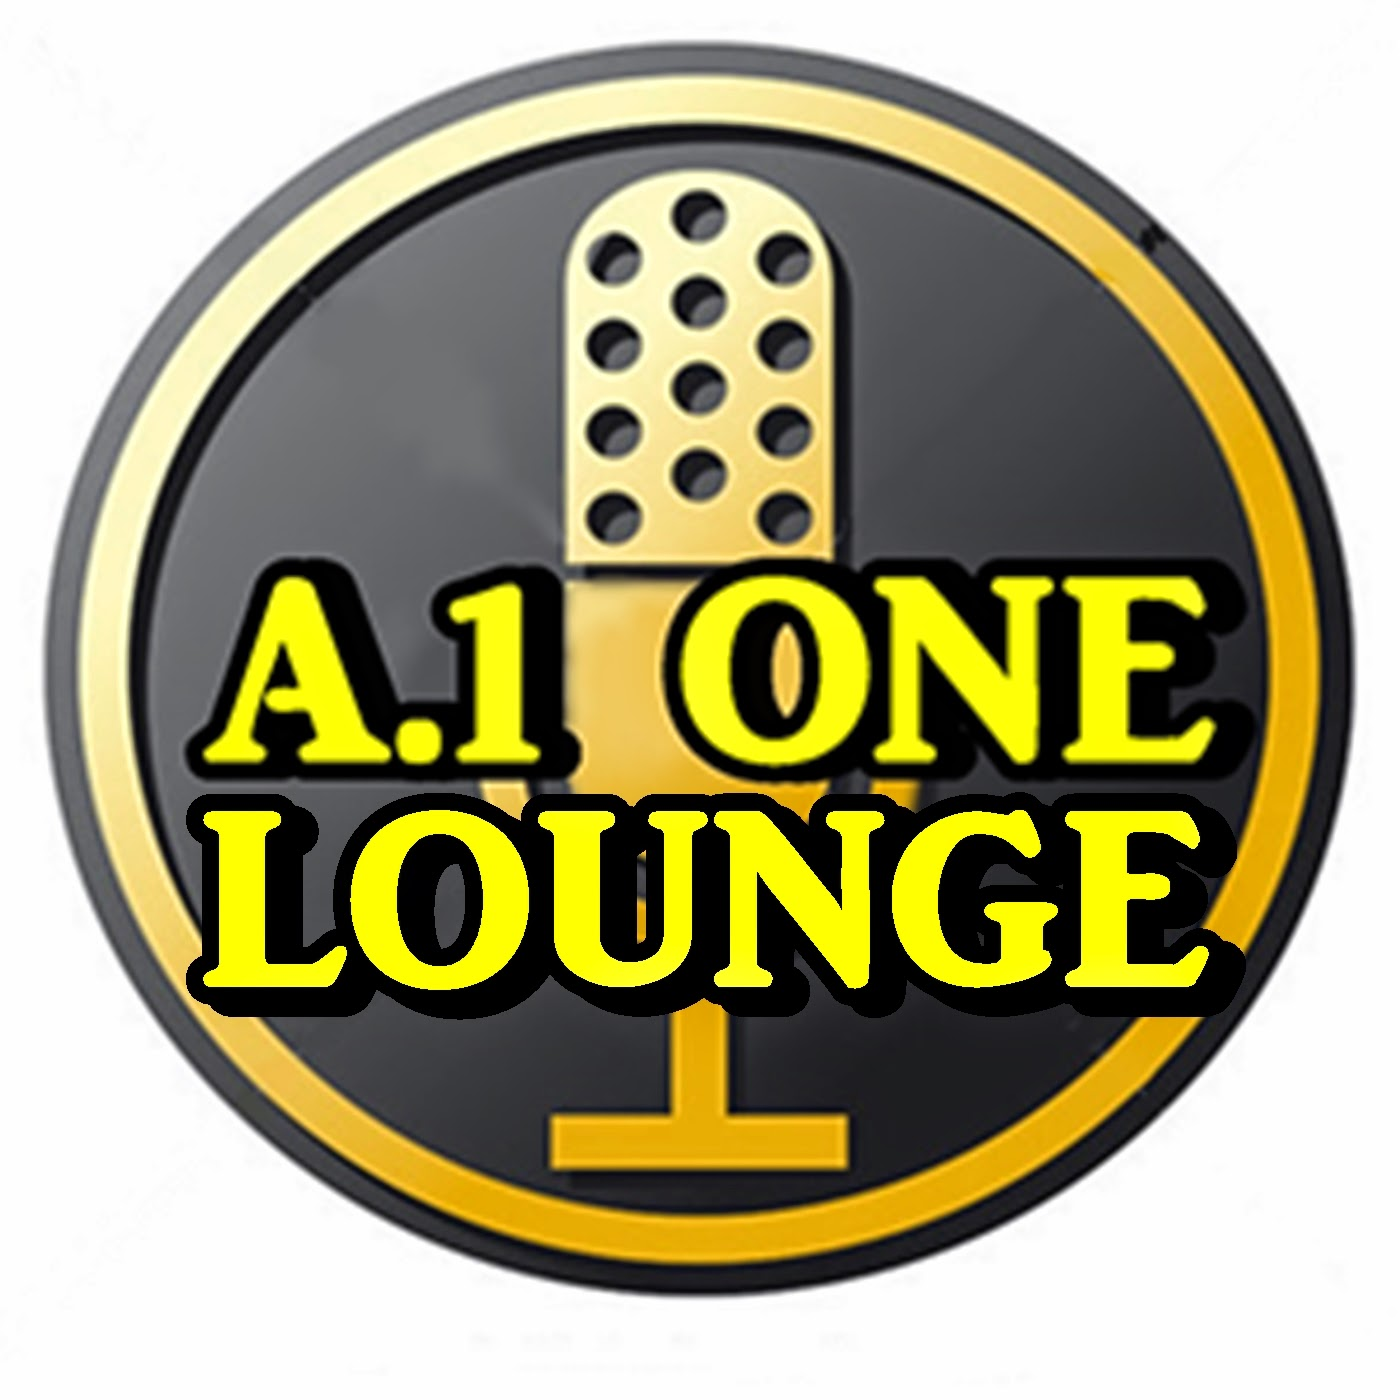 A.1.ONE.LOUNGE clic this logo to website and lastest tracks  !